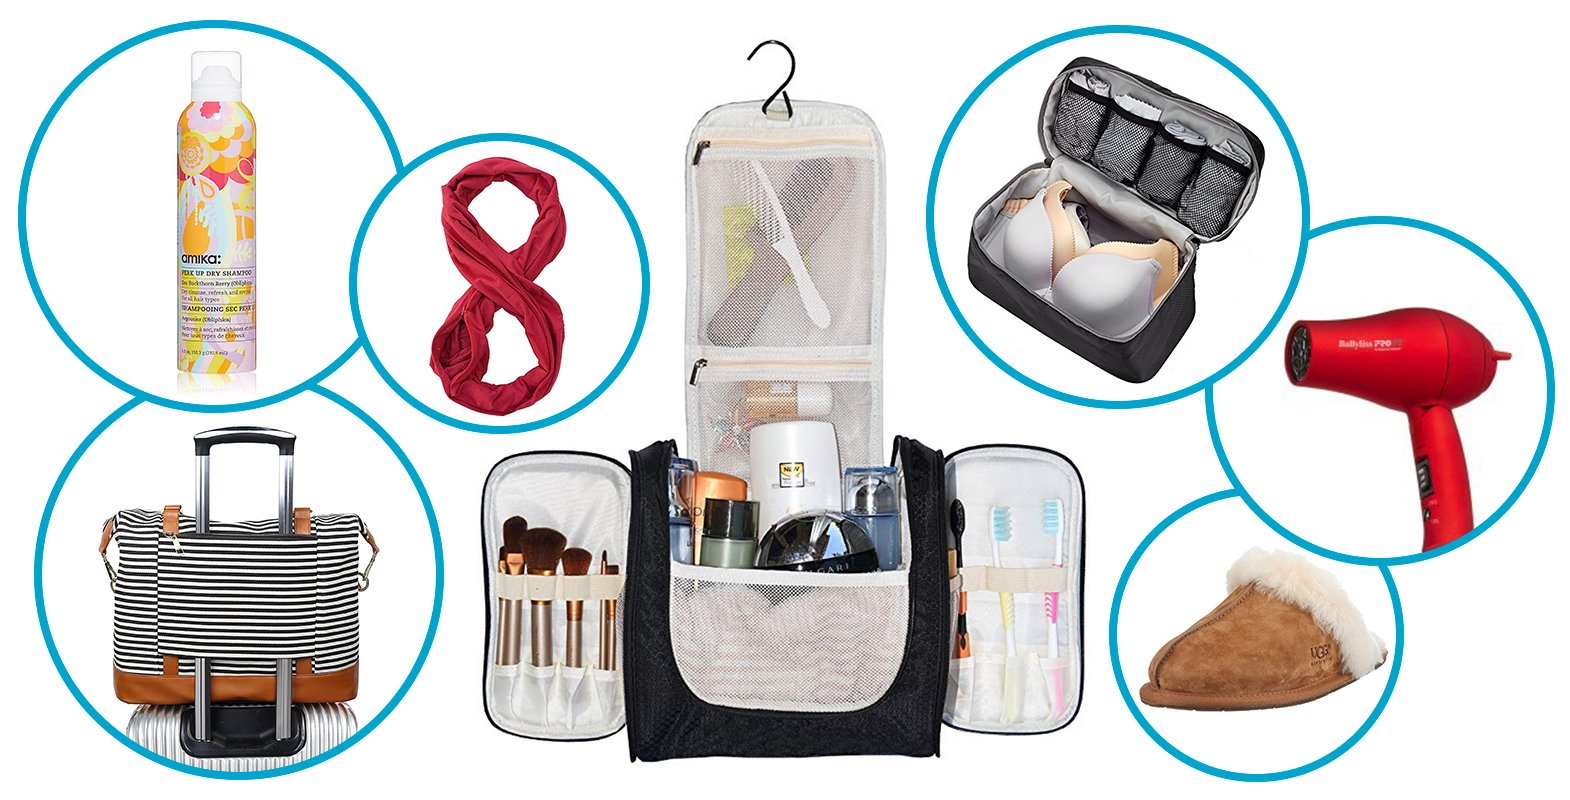 19 Best Travel Accessories for Women in 2018